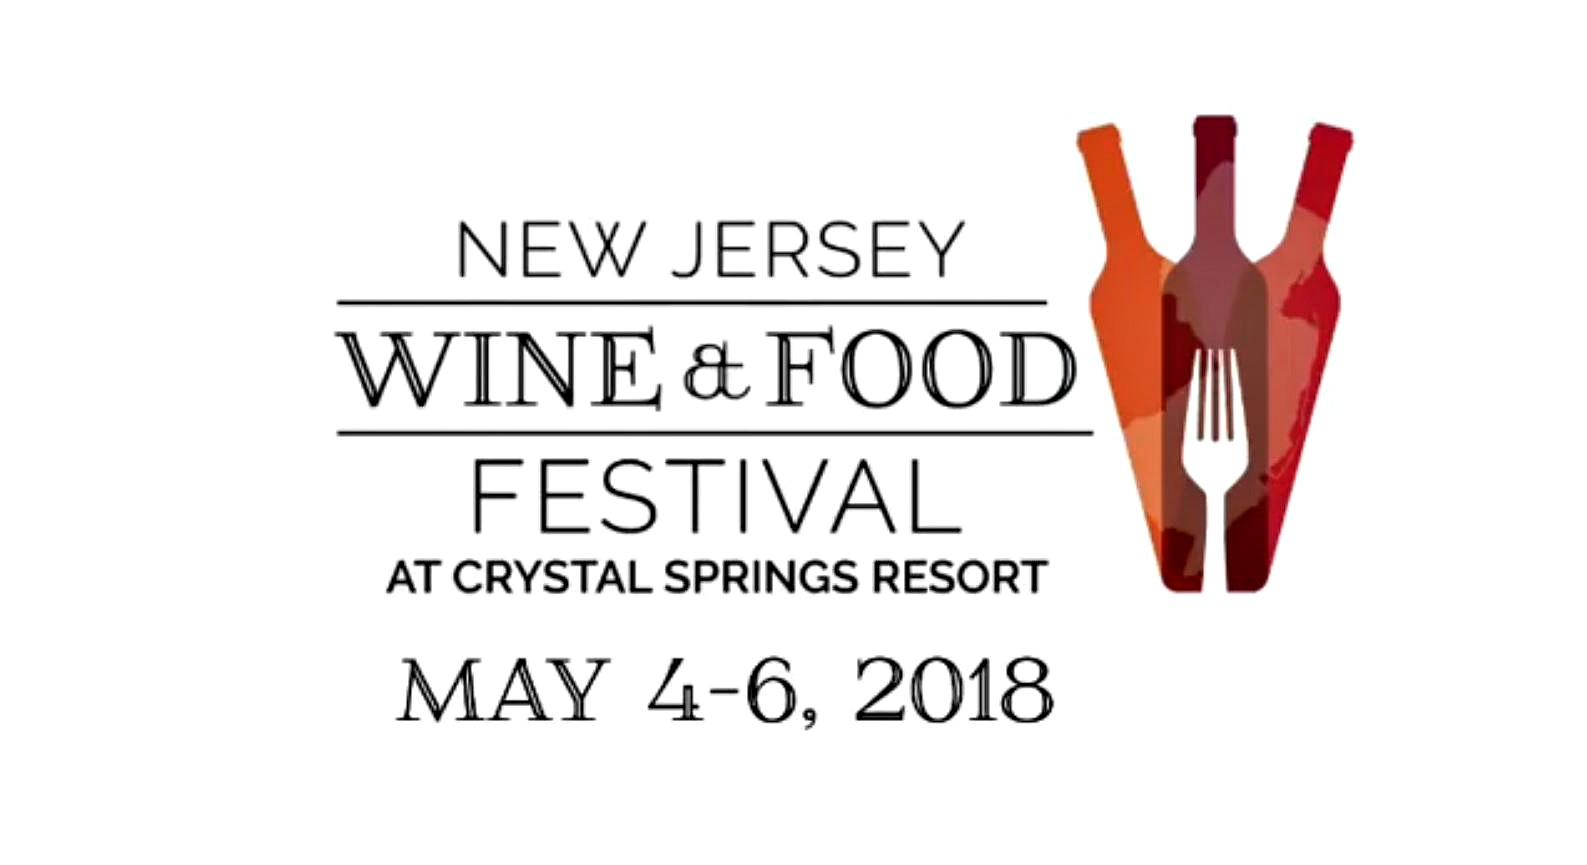 10th Annual New Jersey Wine & Food Festival